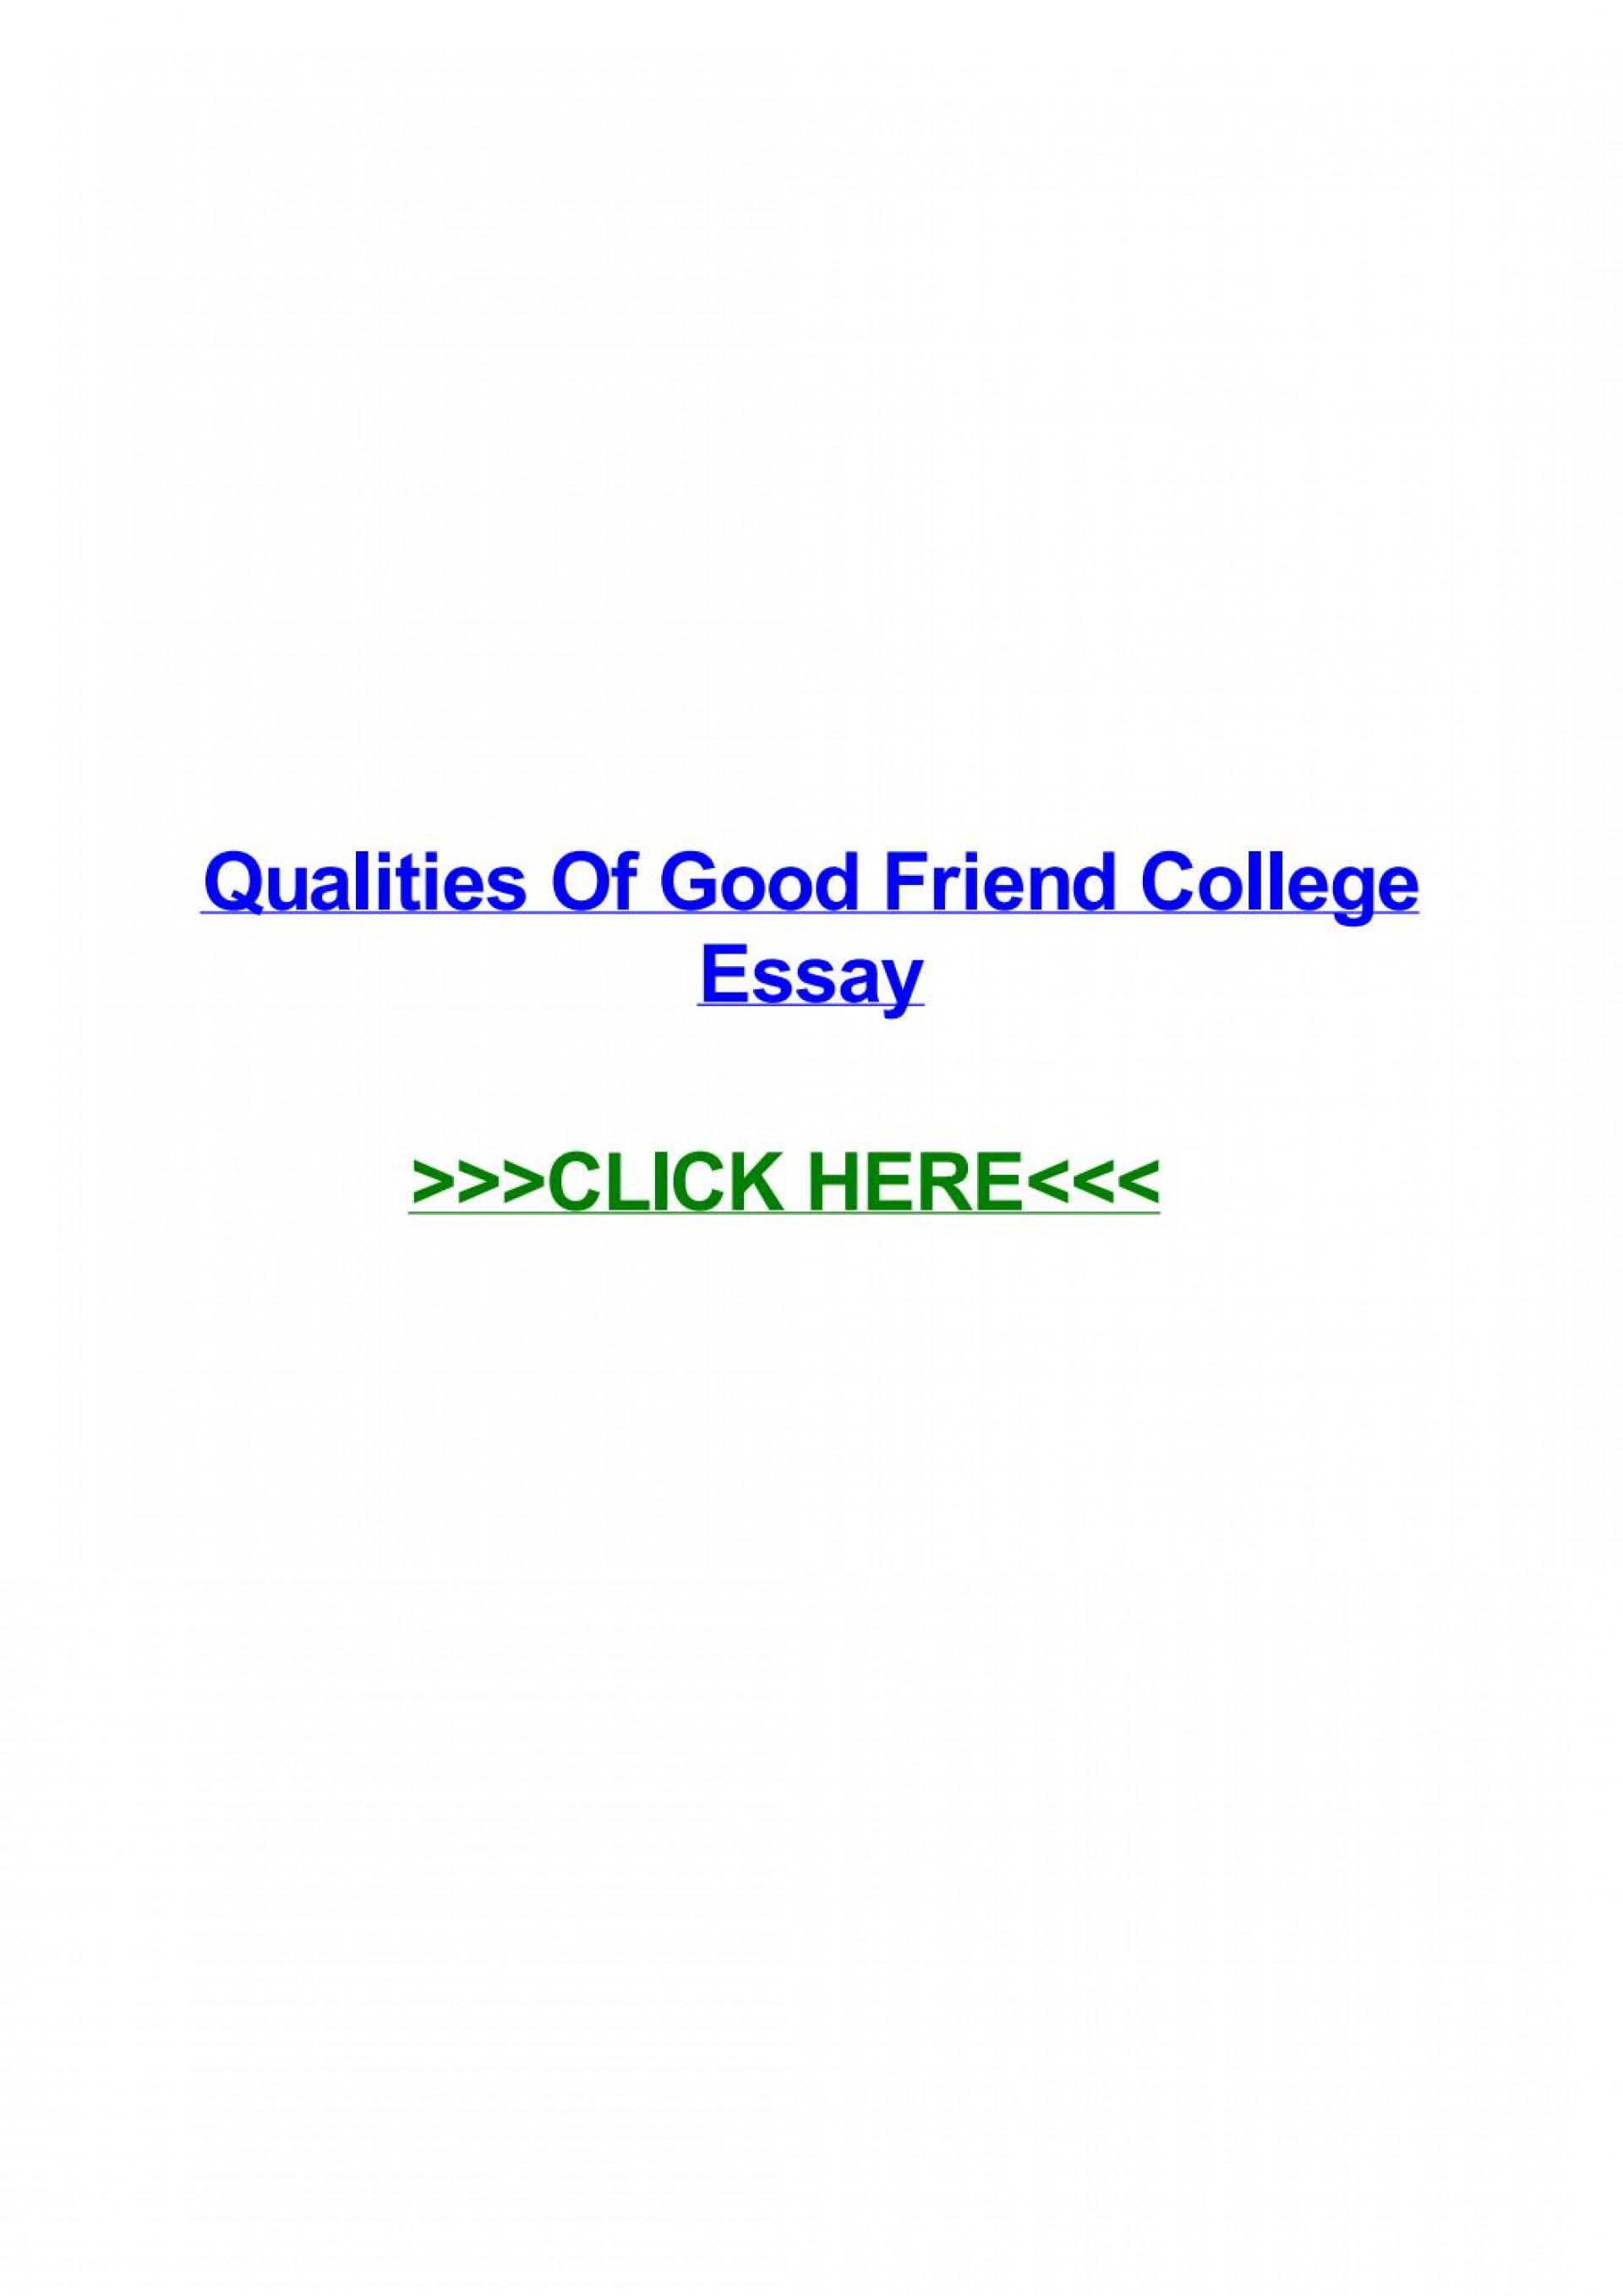 005 Qualities Of Good Friend Essay Page 1 Exceptional A In Hindi Short 1920